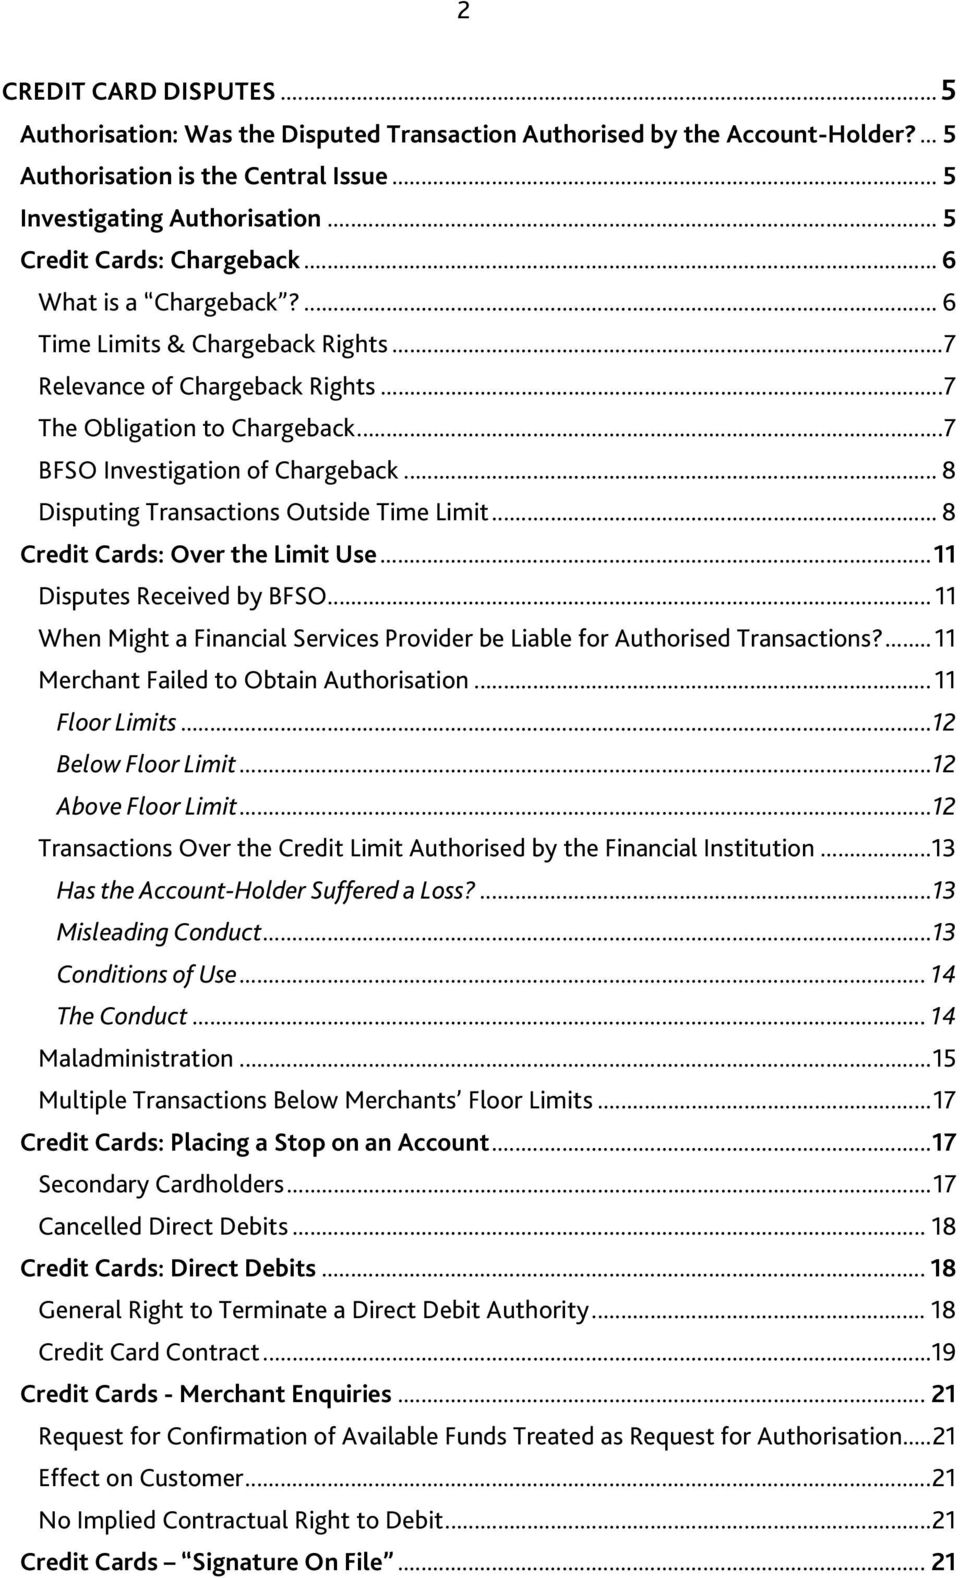 .. 8 Disputing Transactions Outside Time Limit... 8 Credit Cards: Over the Limit Use...11 Disputes Received by BFSO... 11 When Might a Financial Services Provider be Liable for Authorised Transactions?